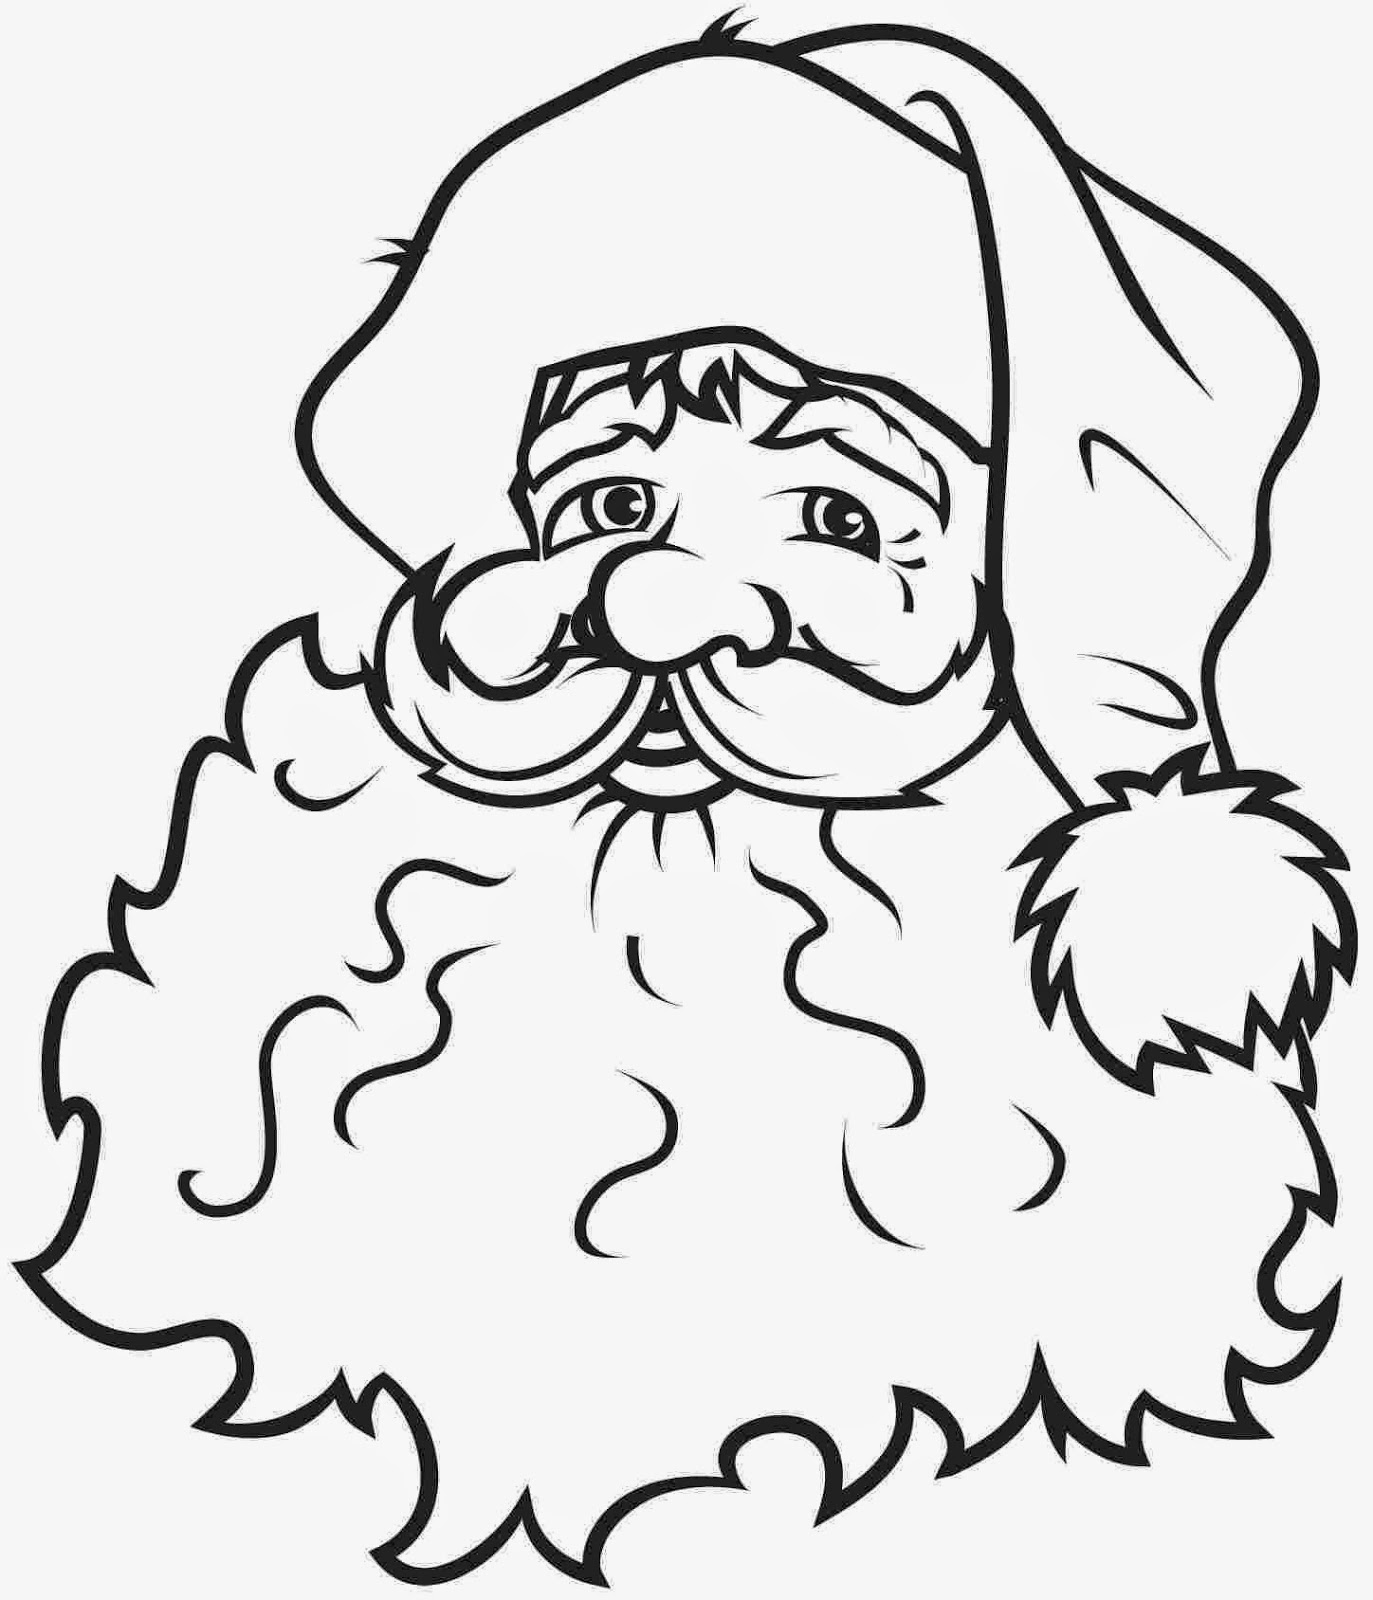 santa claus pictures to print santa claus head coloring pages gtgt disney coloring pages pictures santa claus to print